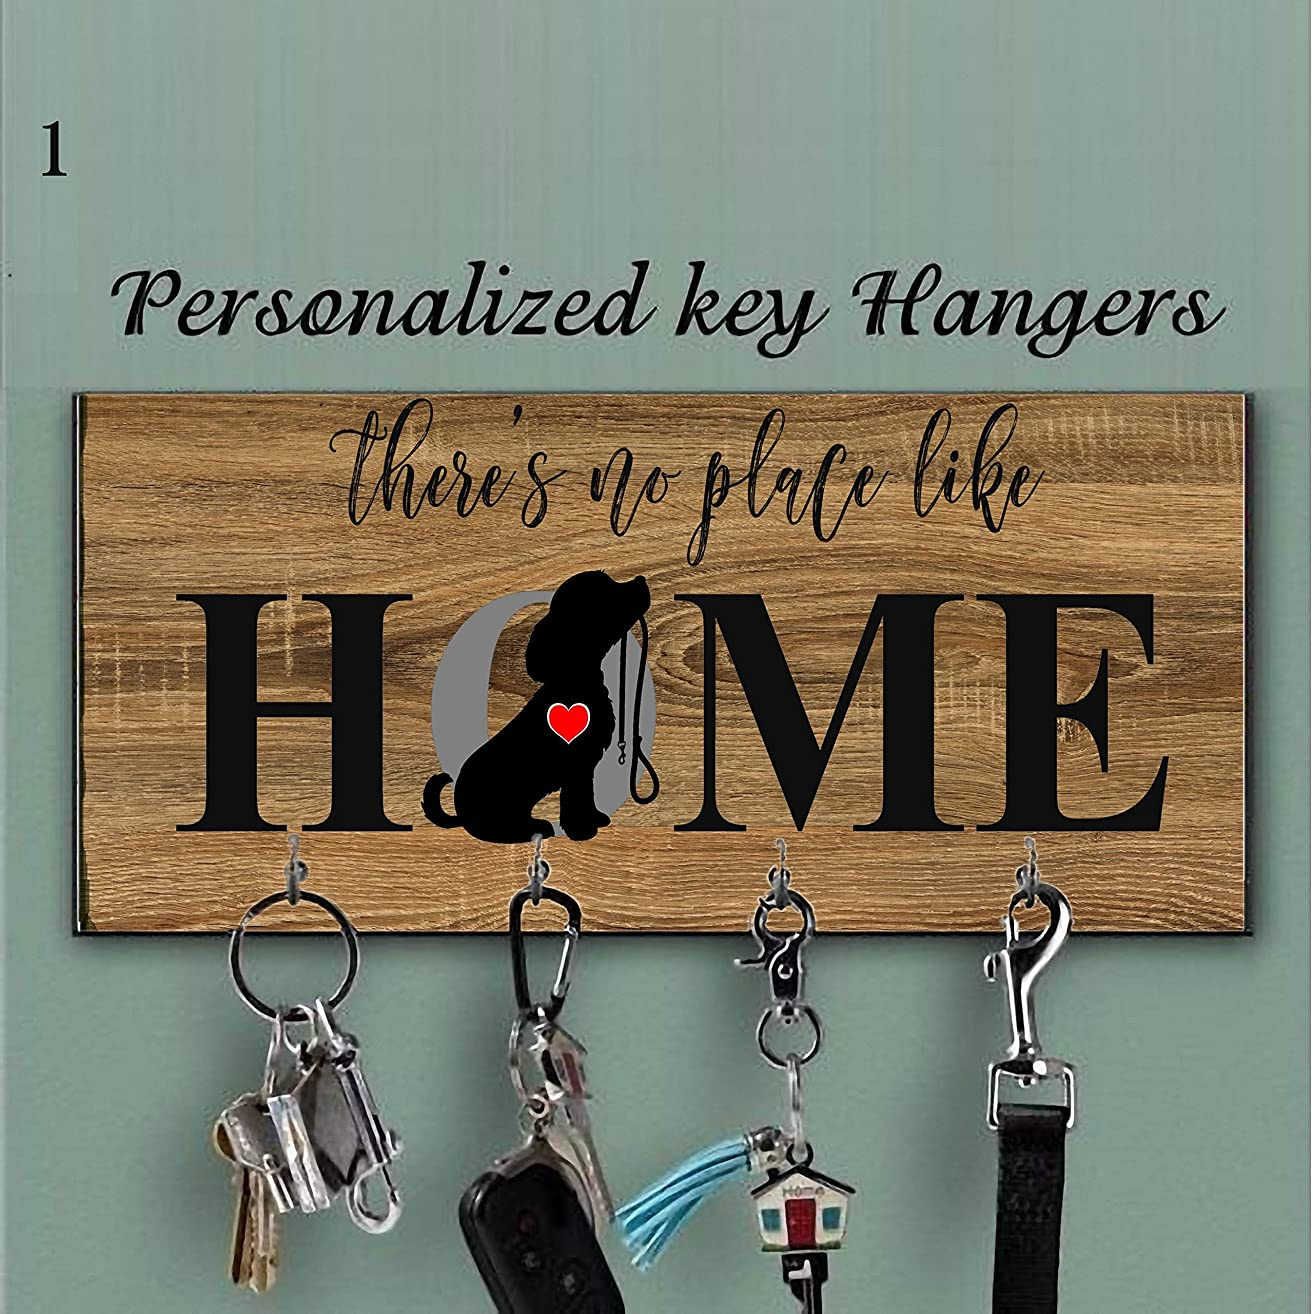 Personalized key holder and Dog Leash hanger for wall, Dog lovers Key Hanger, Housewarming Gift, Dog lovers Gift, Wall Key Rack,Housewarming Gift, Dog Leash Hook, HOME Pet Decor, Personalized Sign